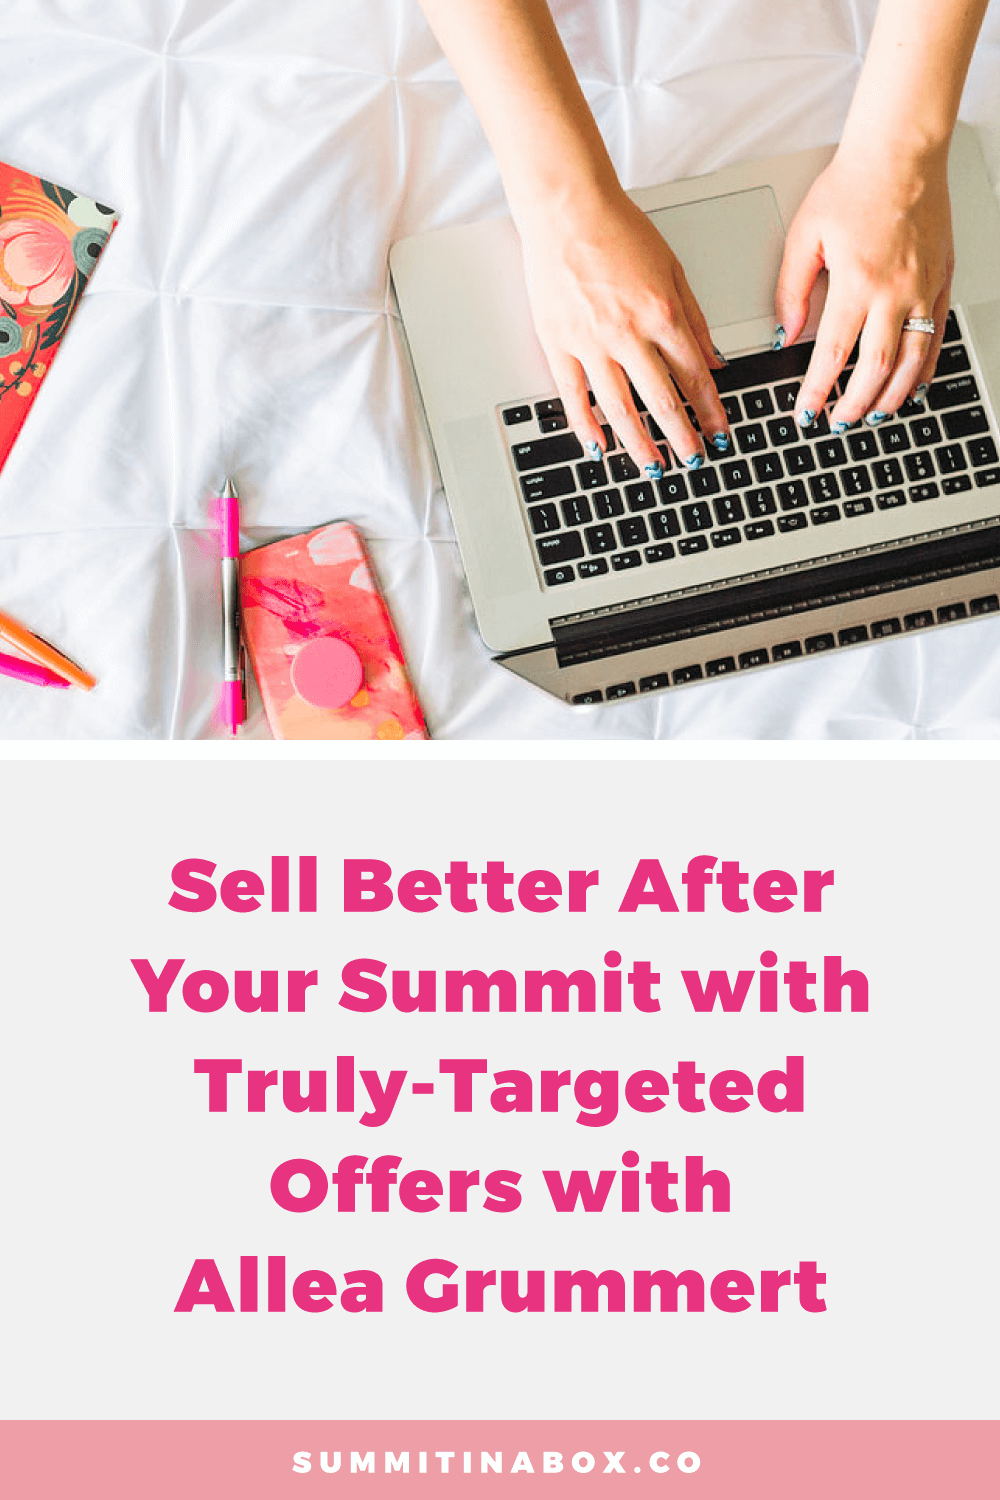 Hosting a virtual summit is an incredible way to build interest in your offers. Learn how to sell better after your summit with truly-targeted offers.